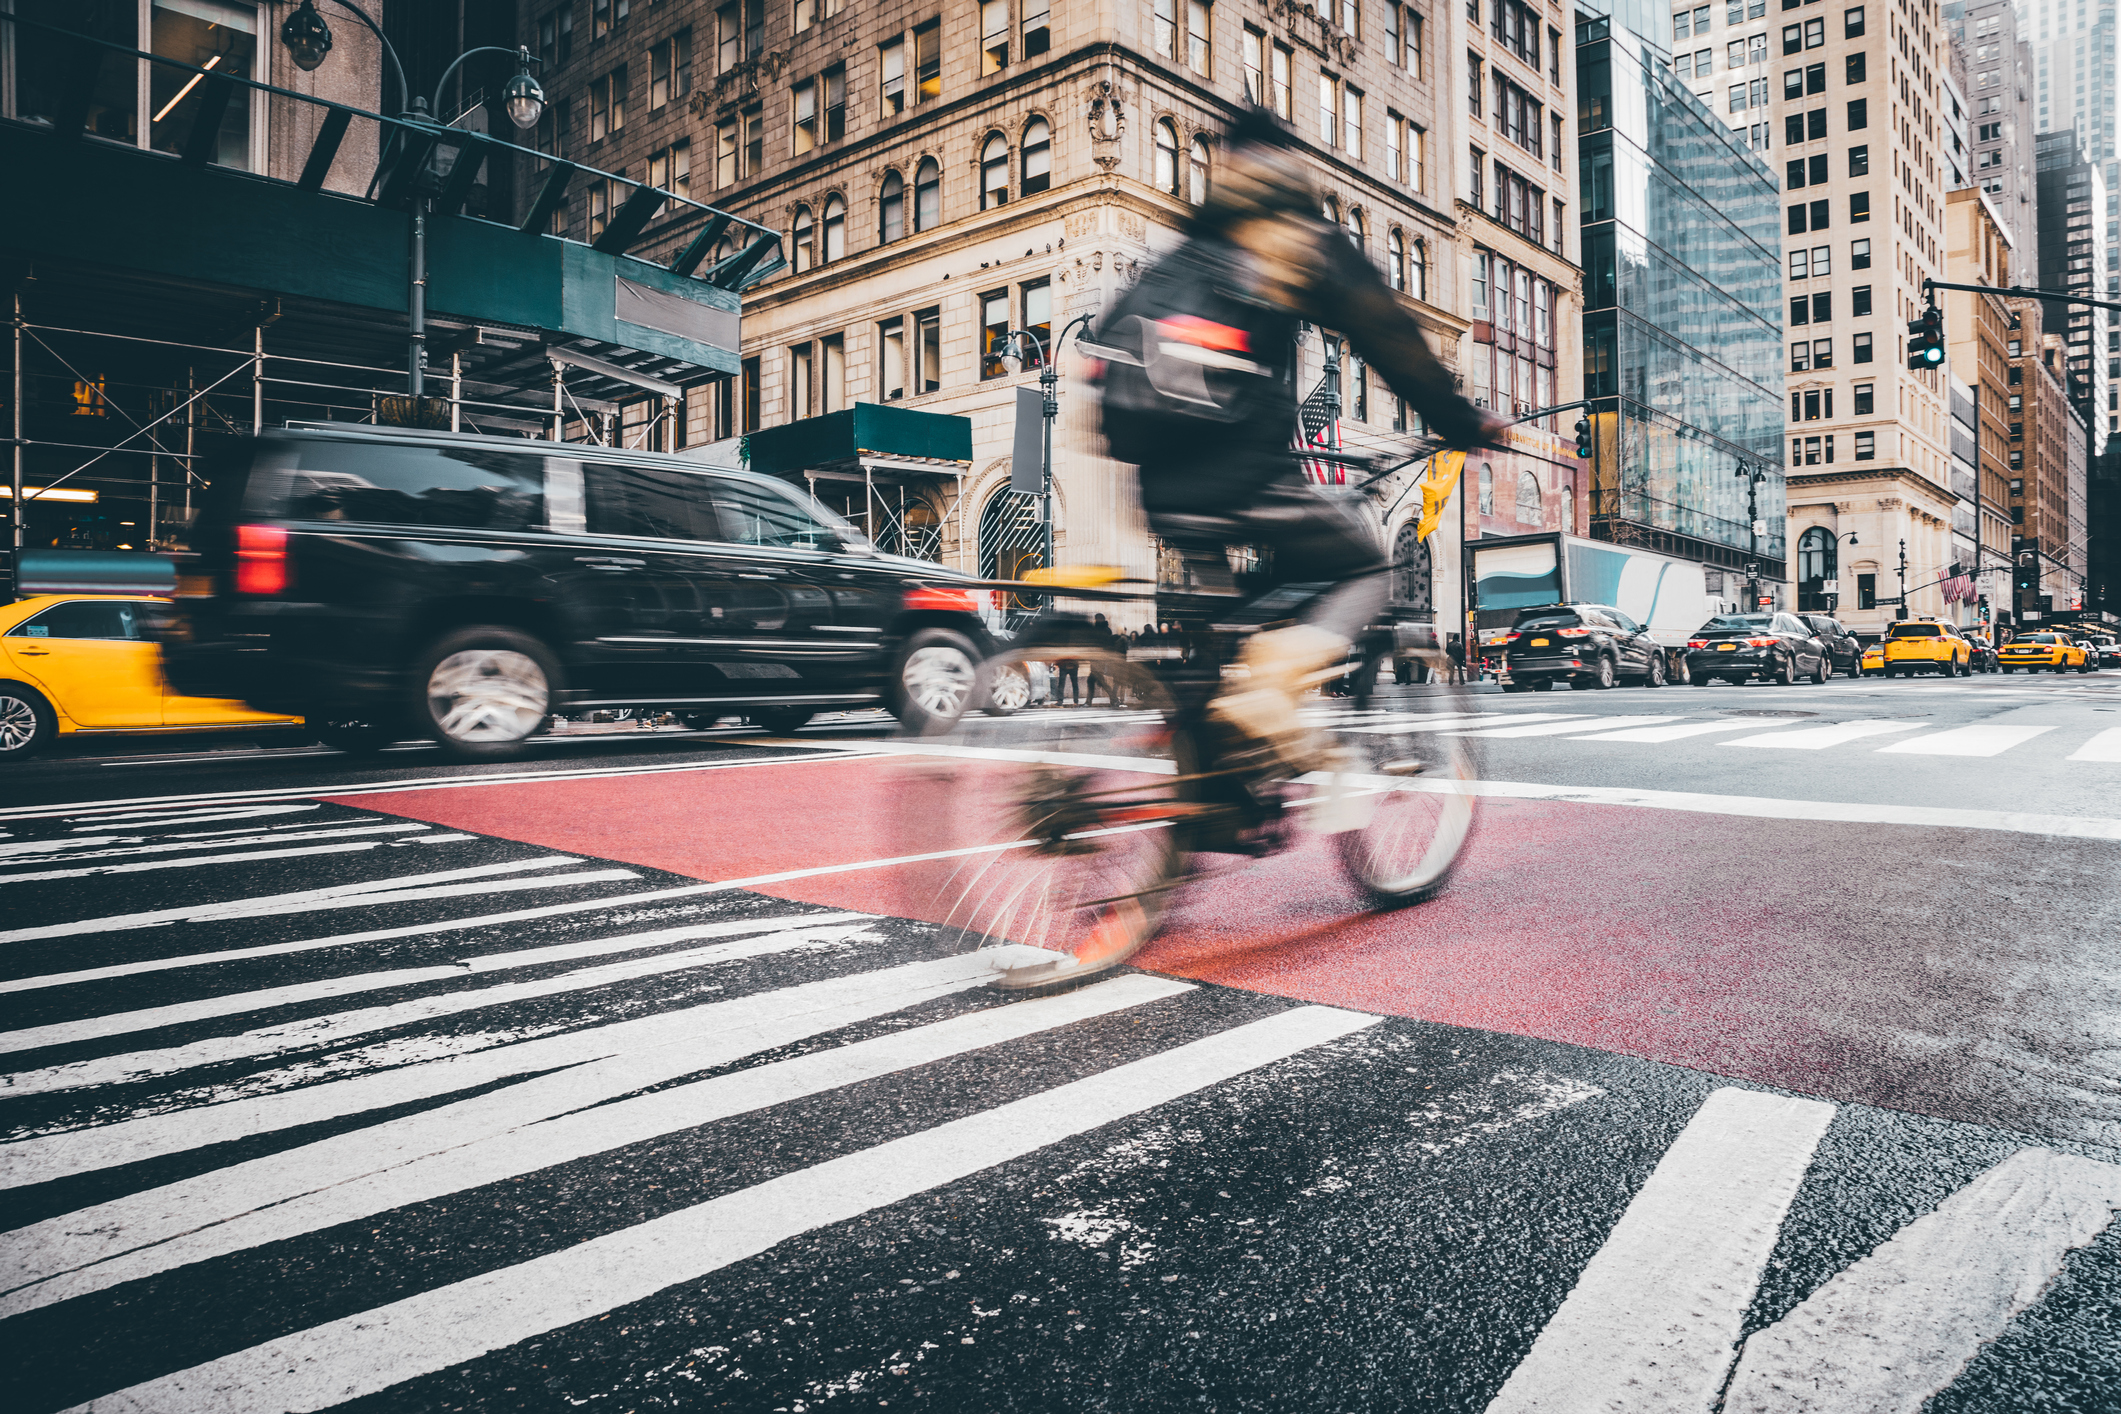 Drivers in NYC which uses telematics to meet Vision Zero safety objectives